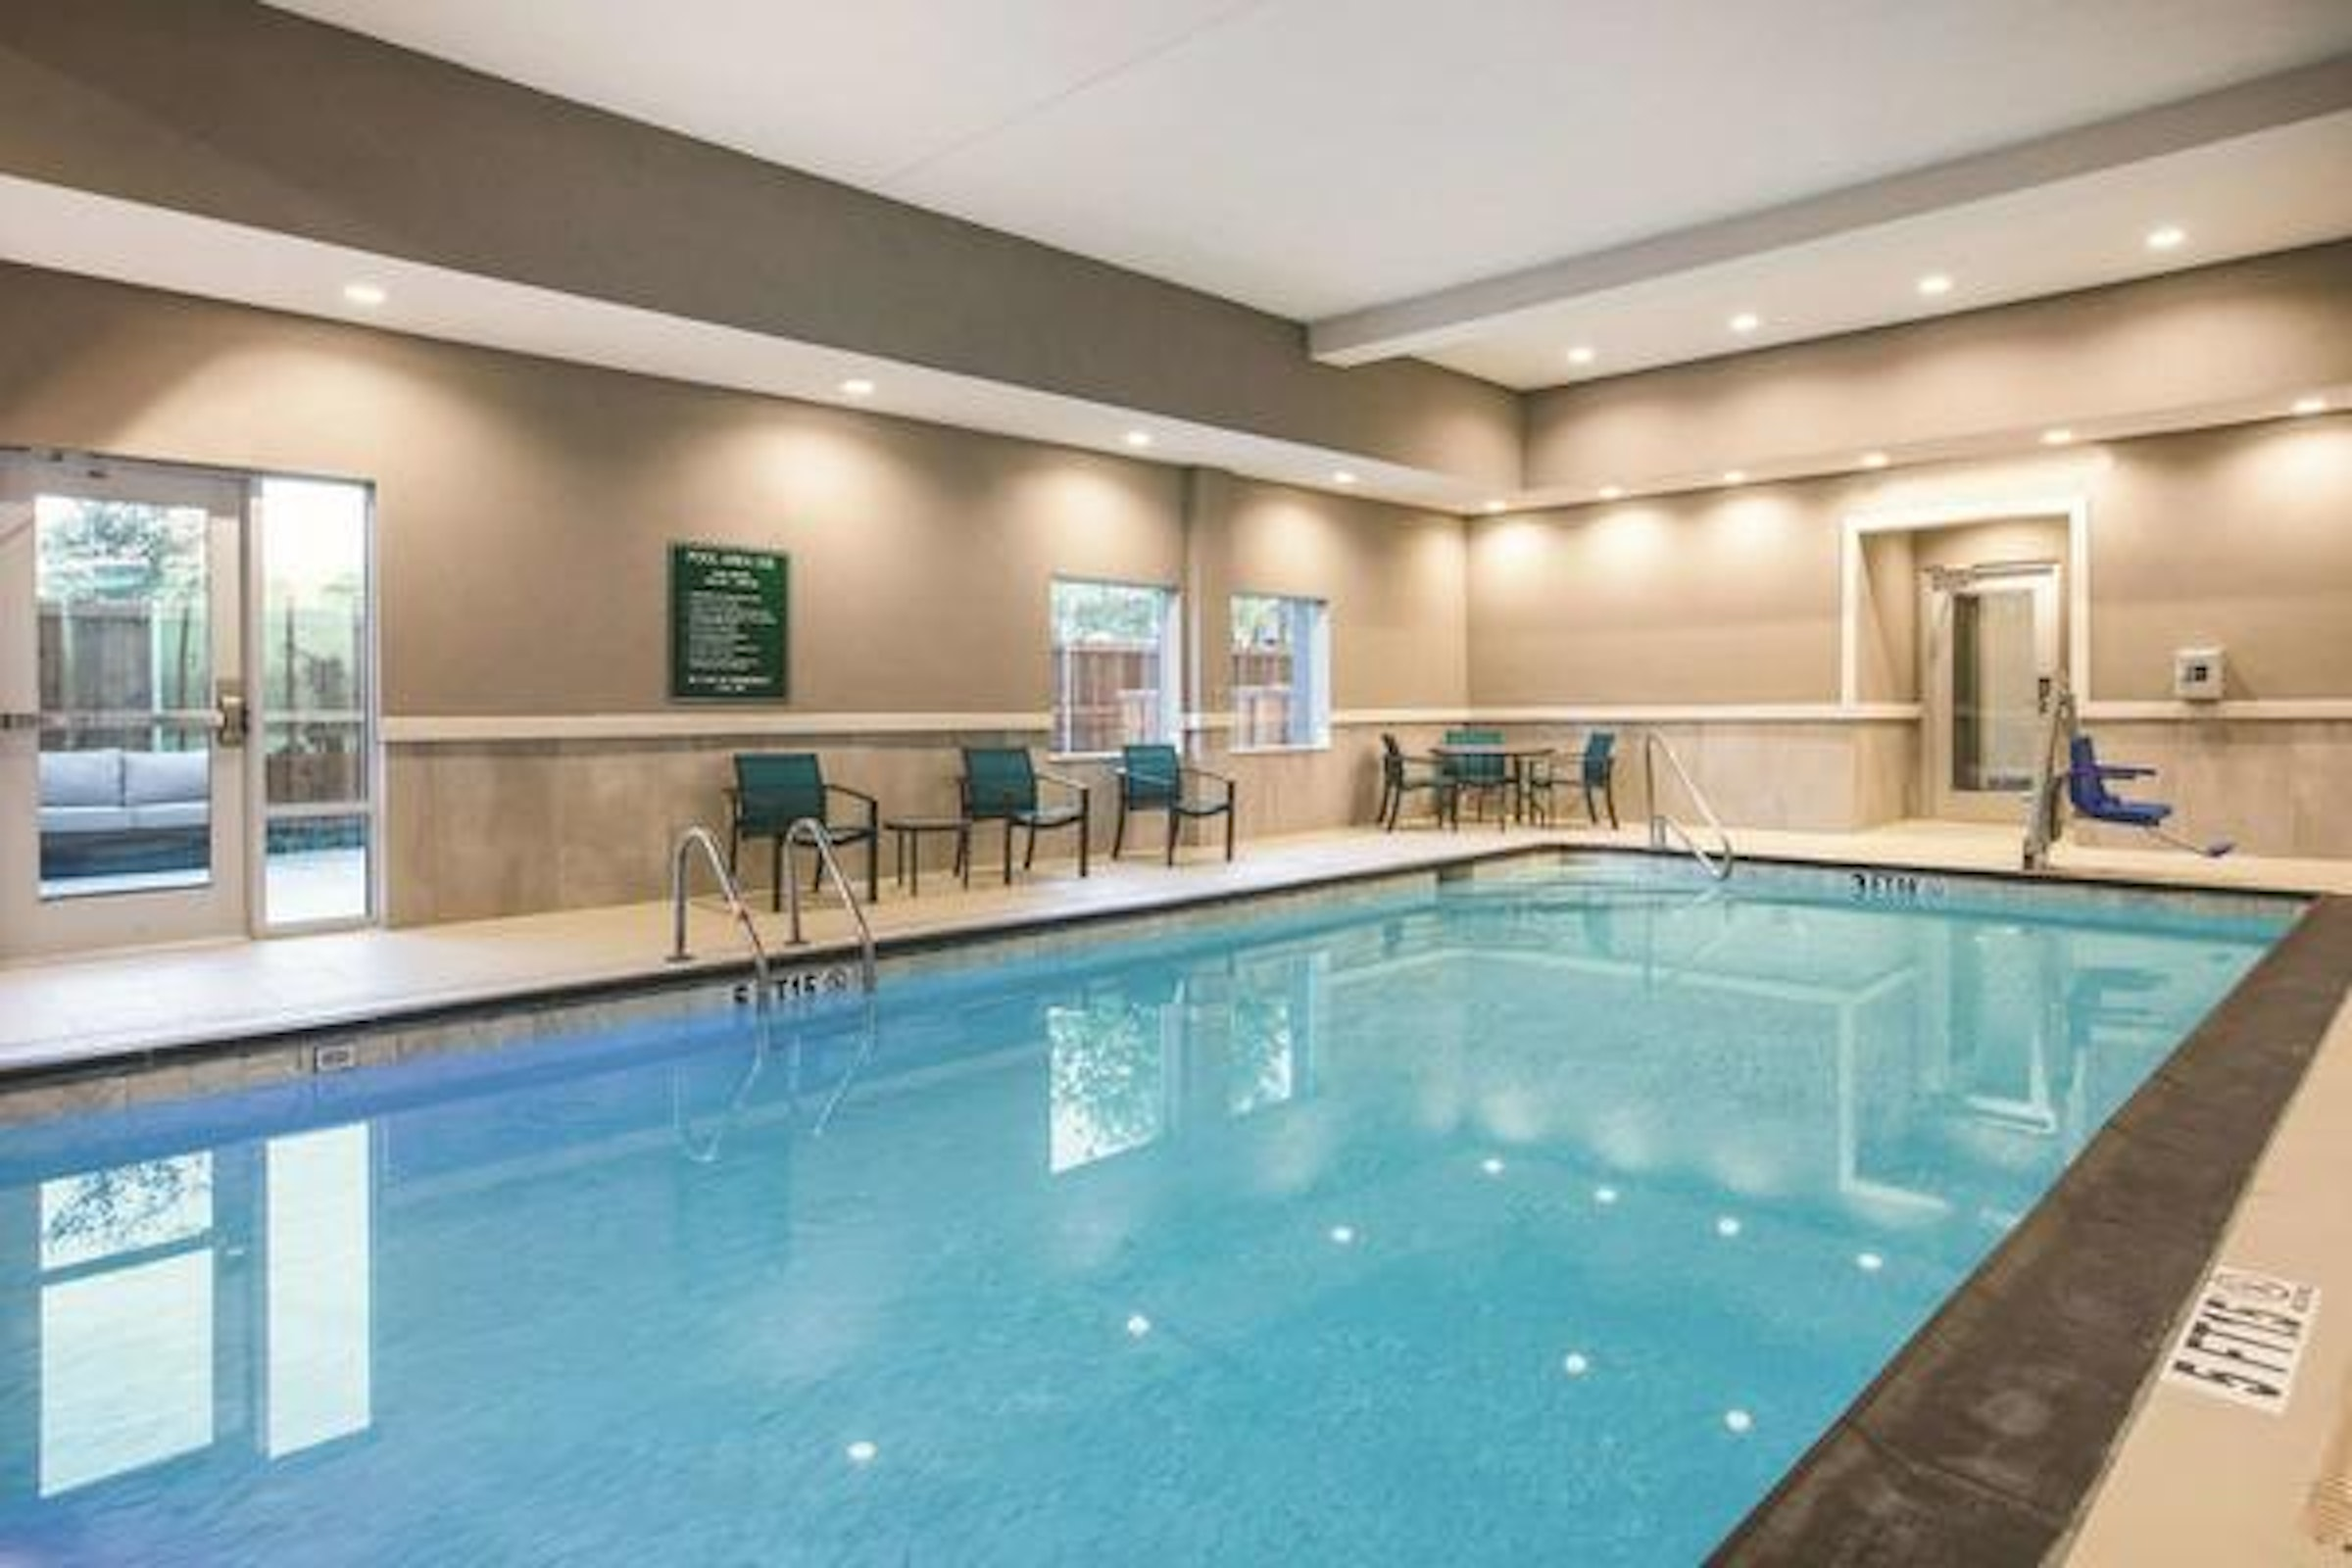 La Quinta Inn & Suites Dallas Richardson in Beyond Dallas